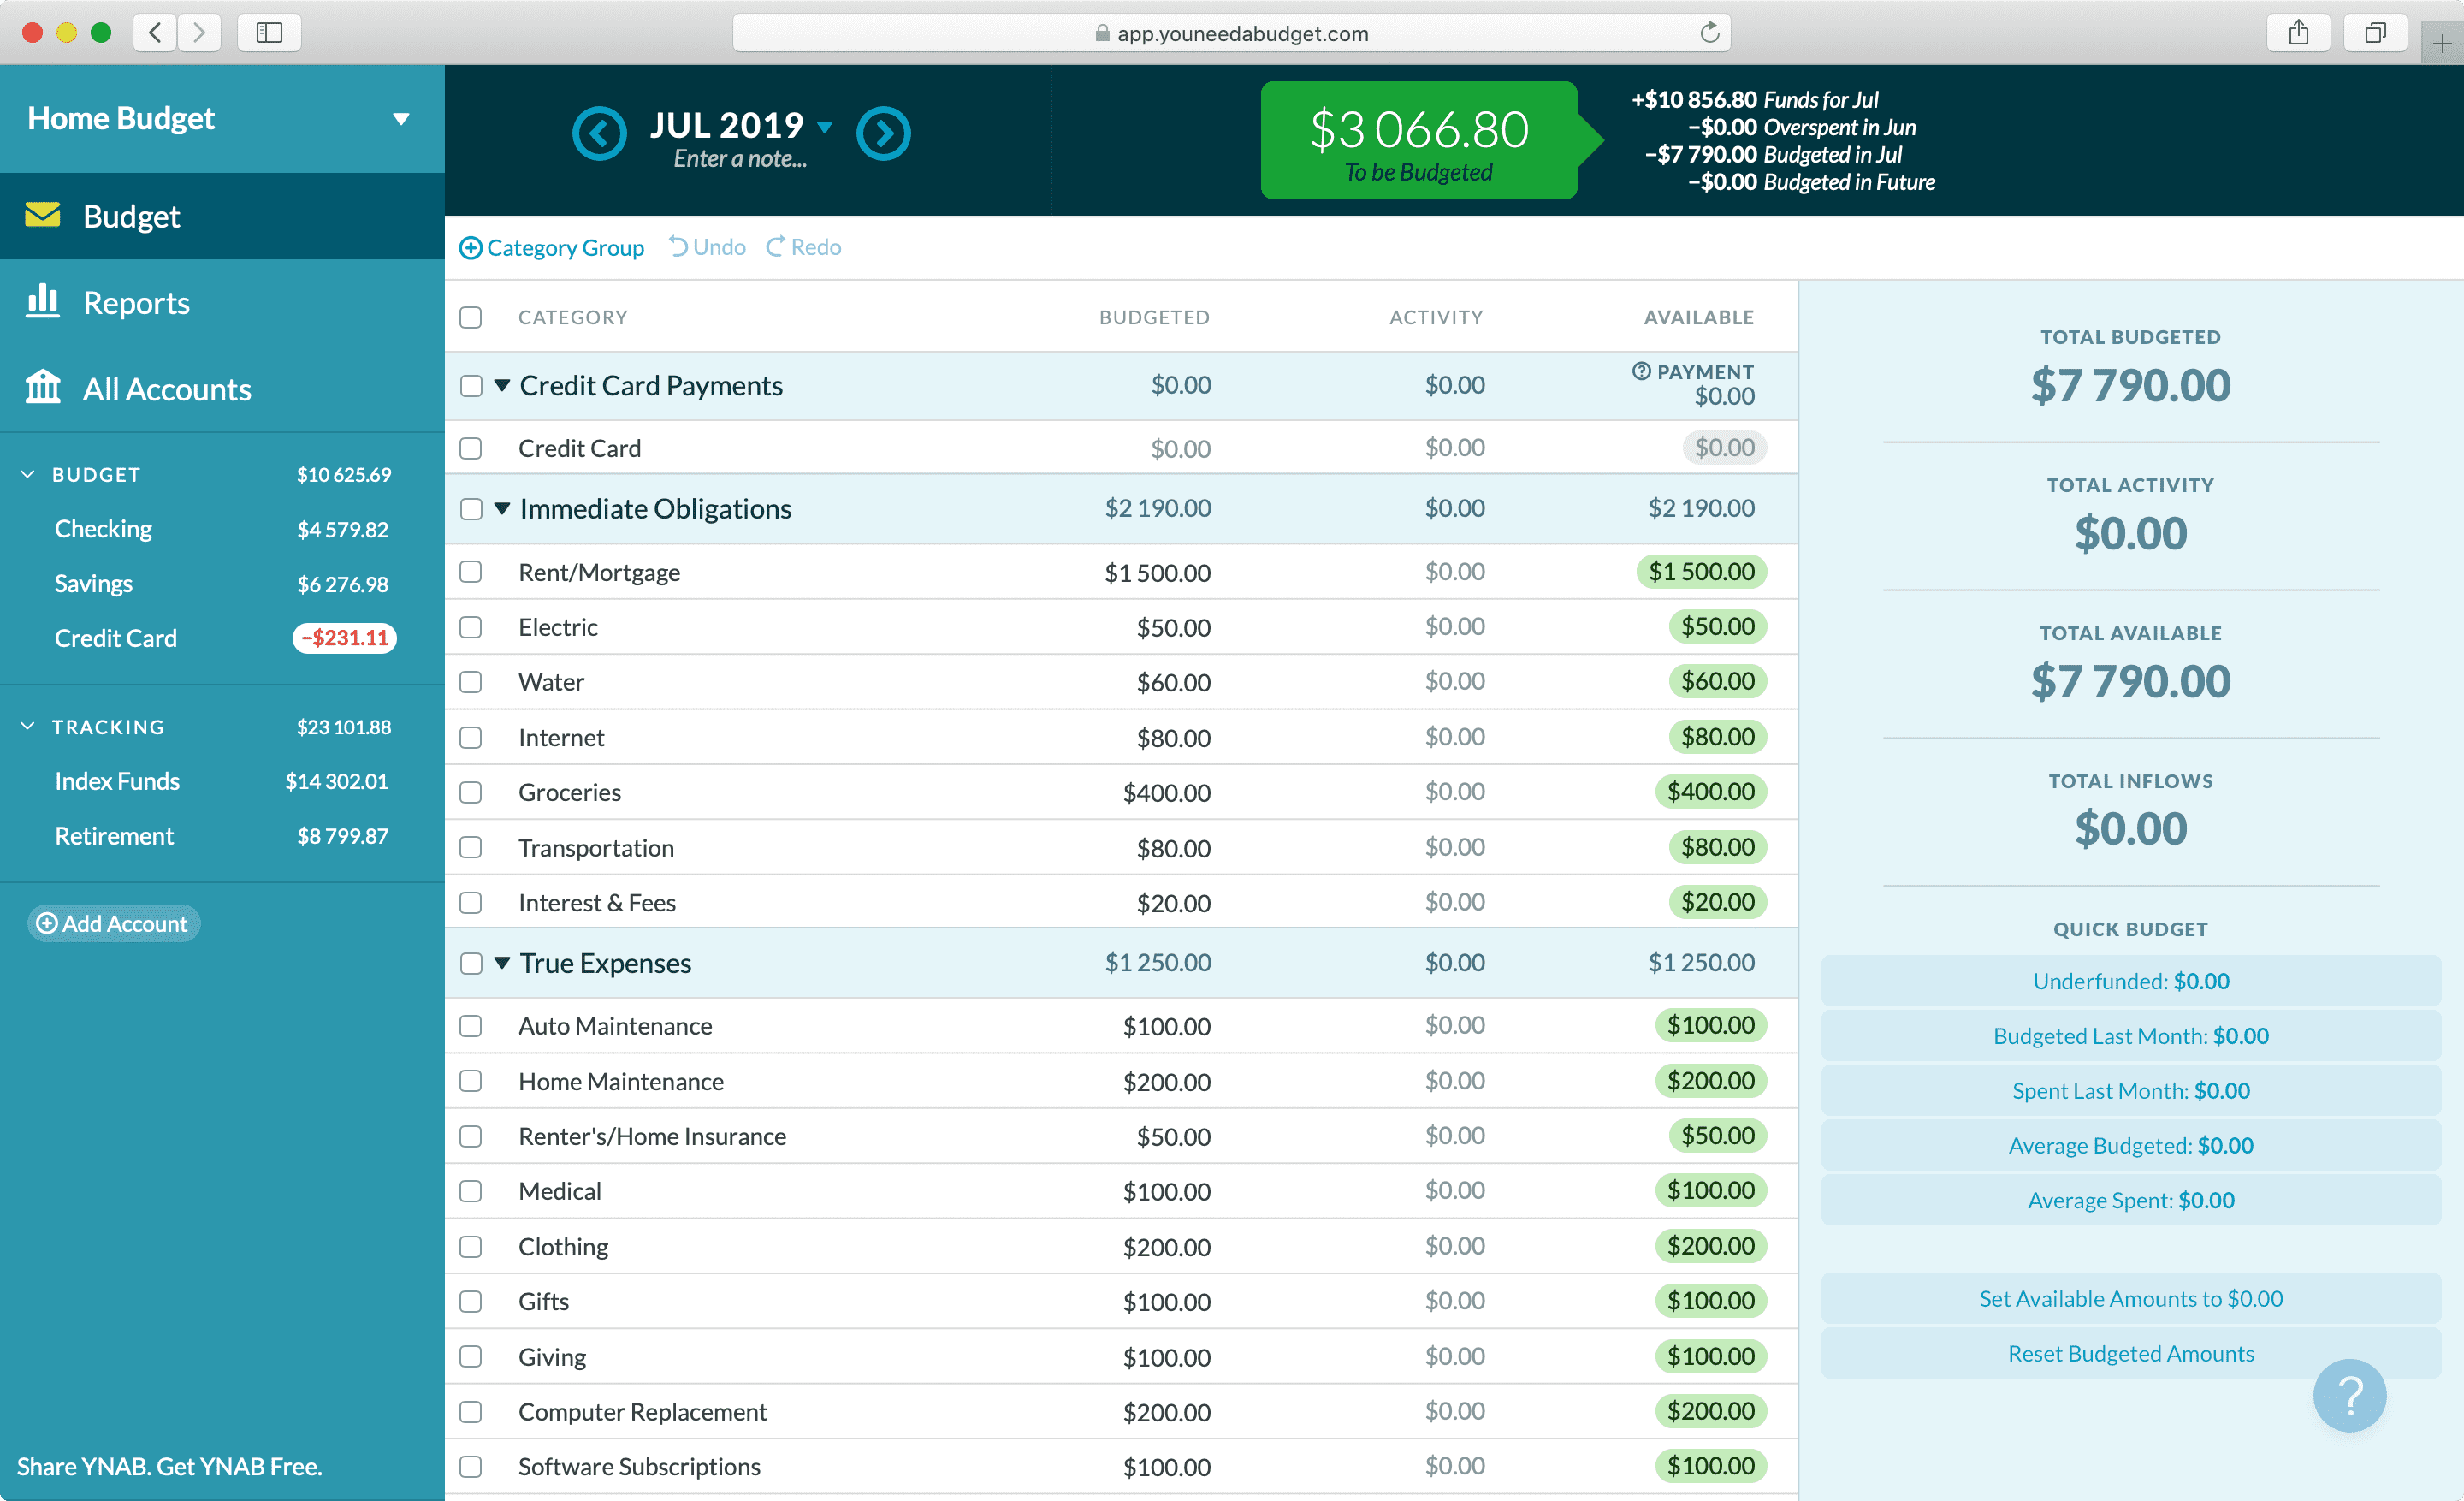 YNAB main screen